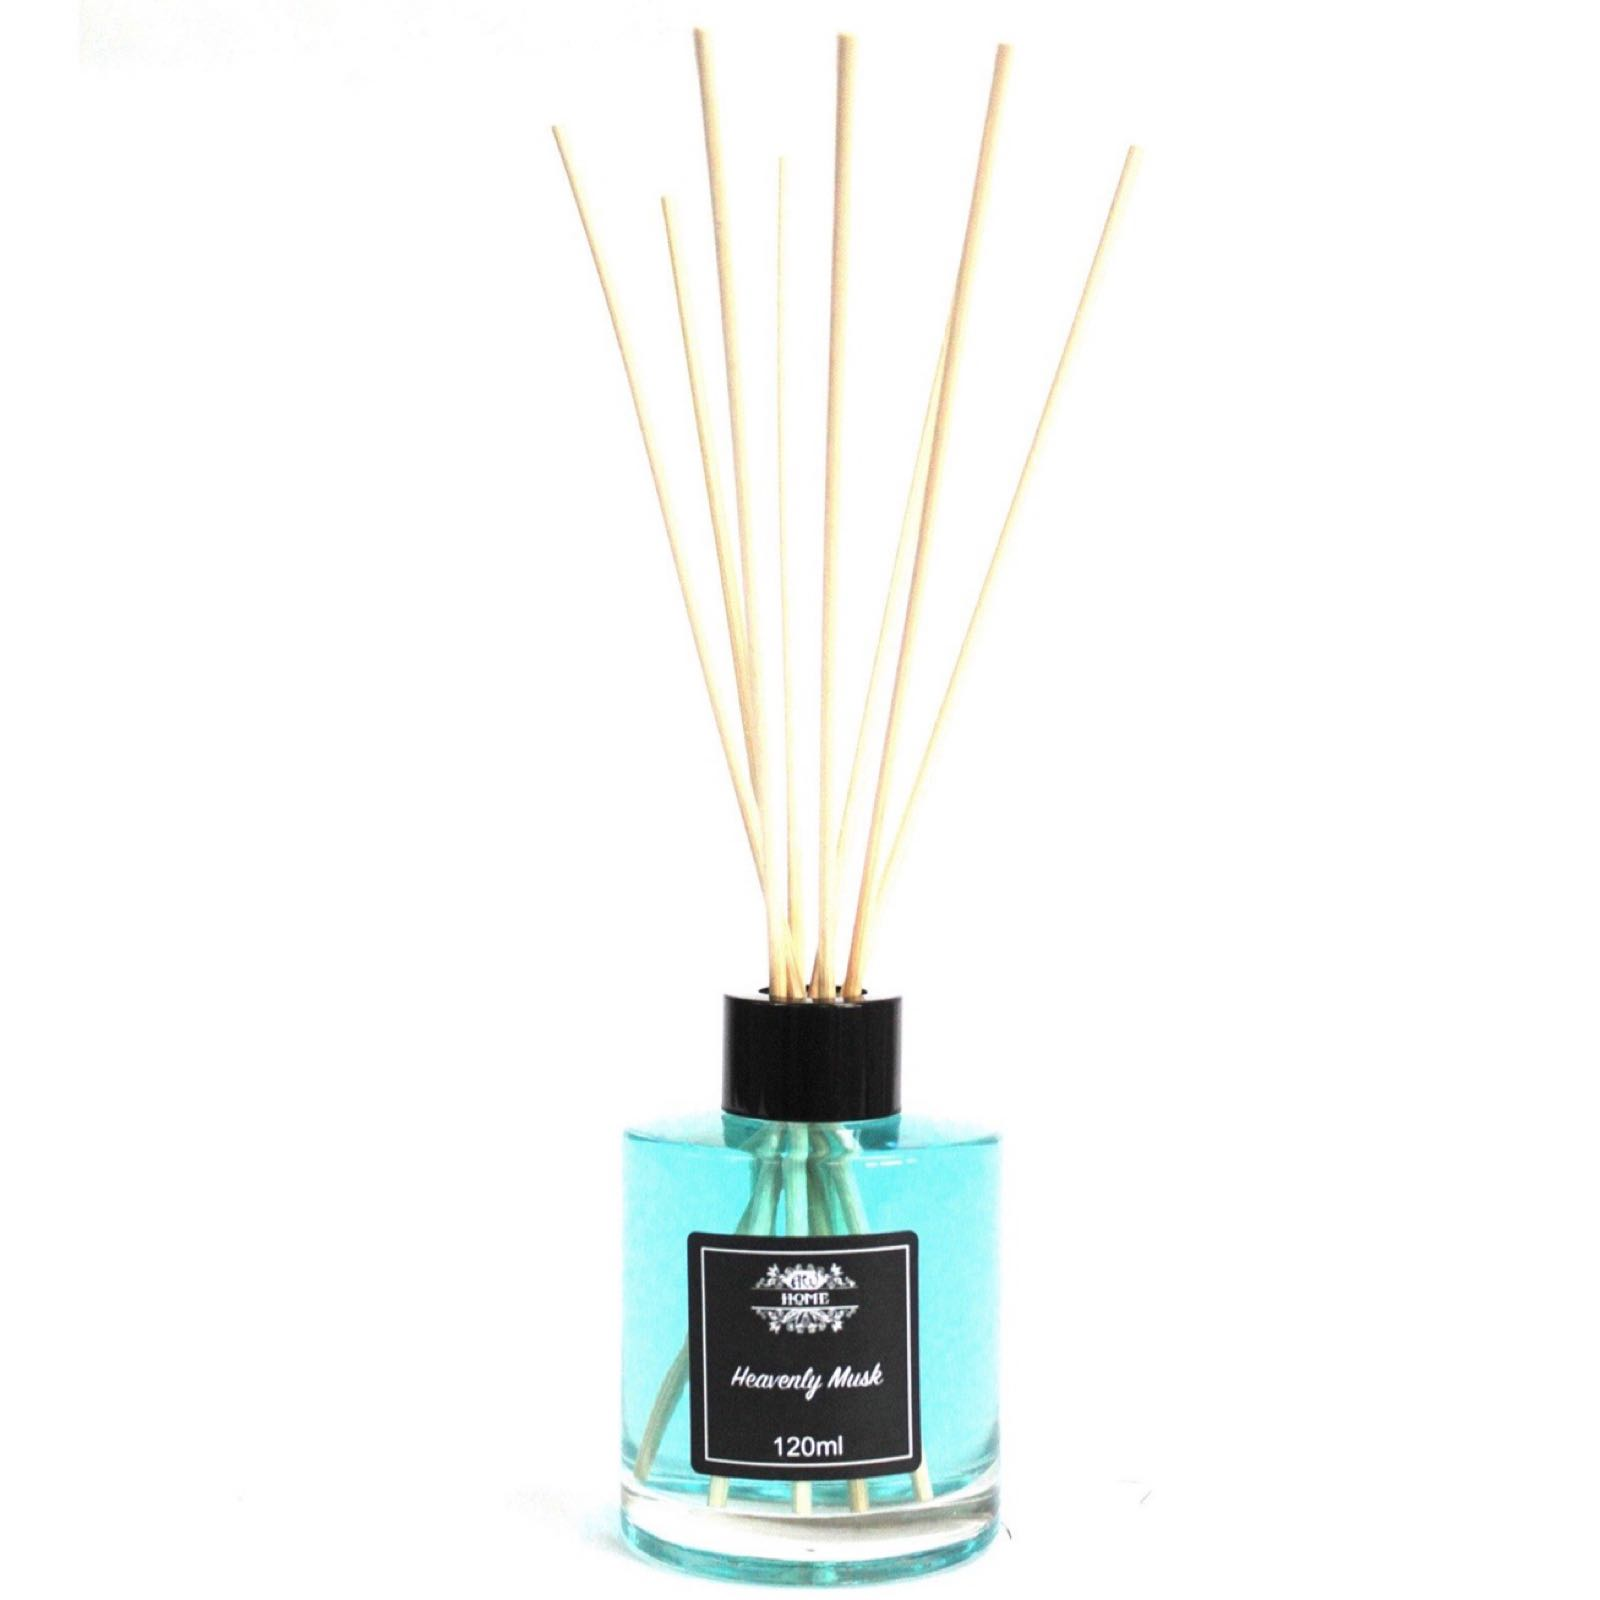 'Heavenly Musk' Reed Diffuser (Was £13.00)